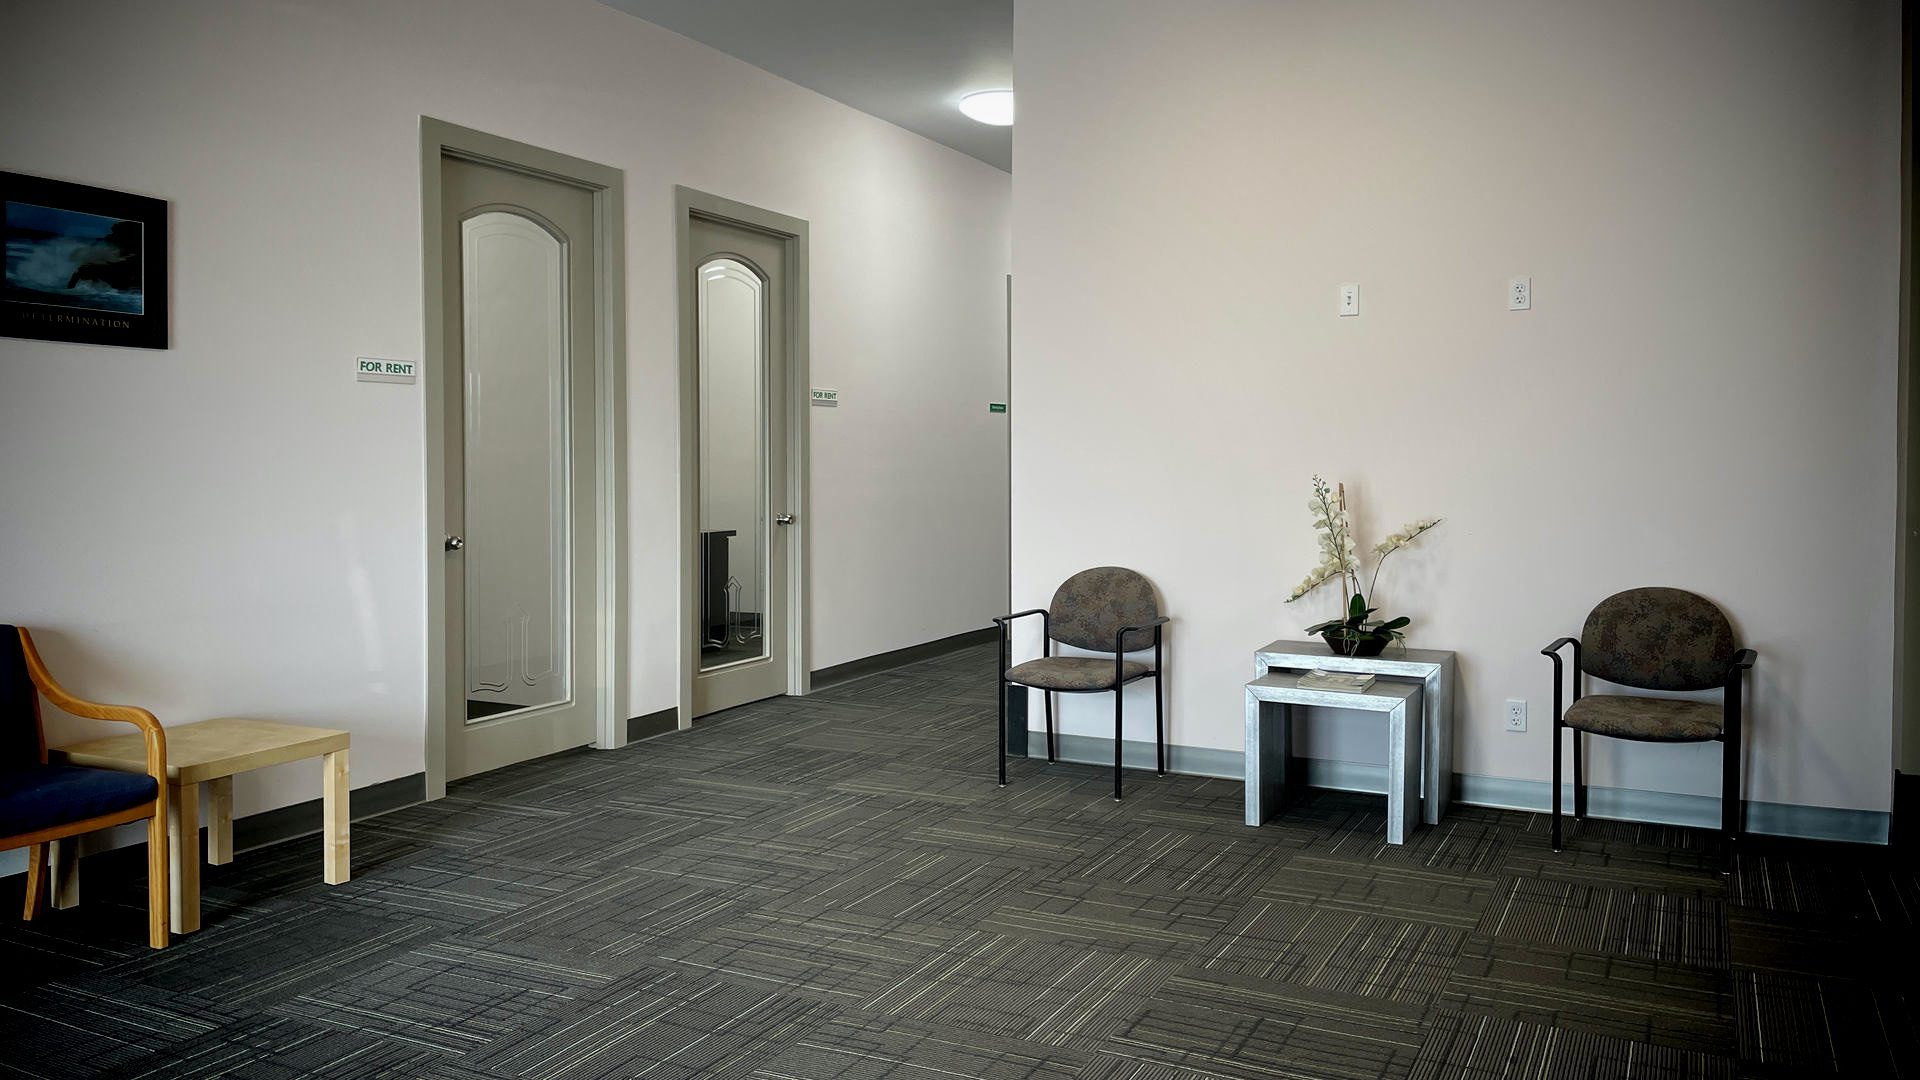 A well light office foyer with chairs.